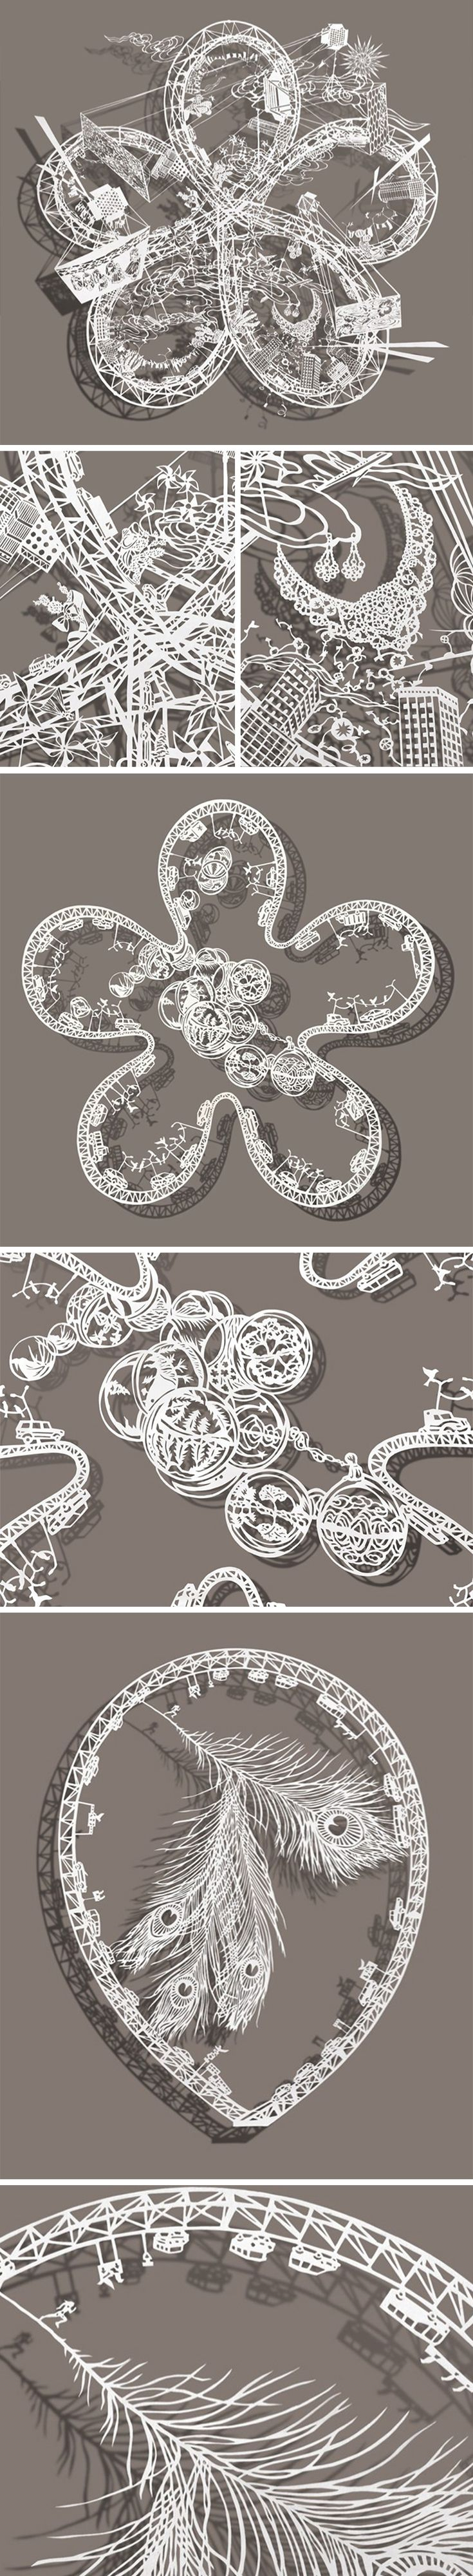 Best Paper Cut Images On Pinterest Artists Paintings And - Incredible intricately cut paper designs bovey lee